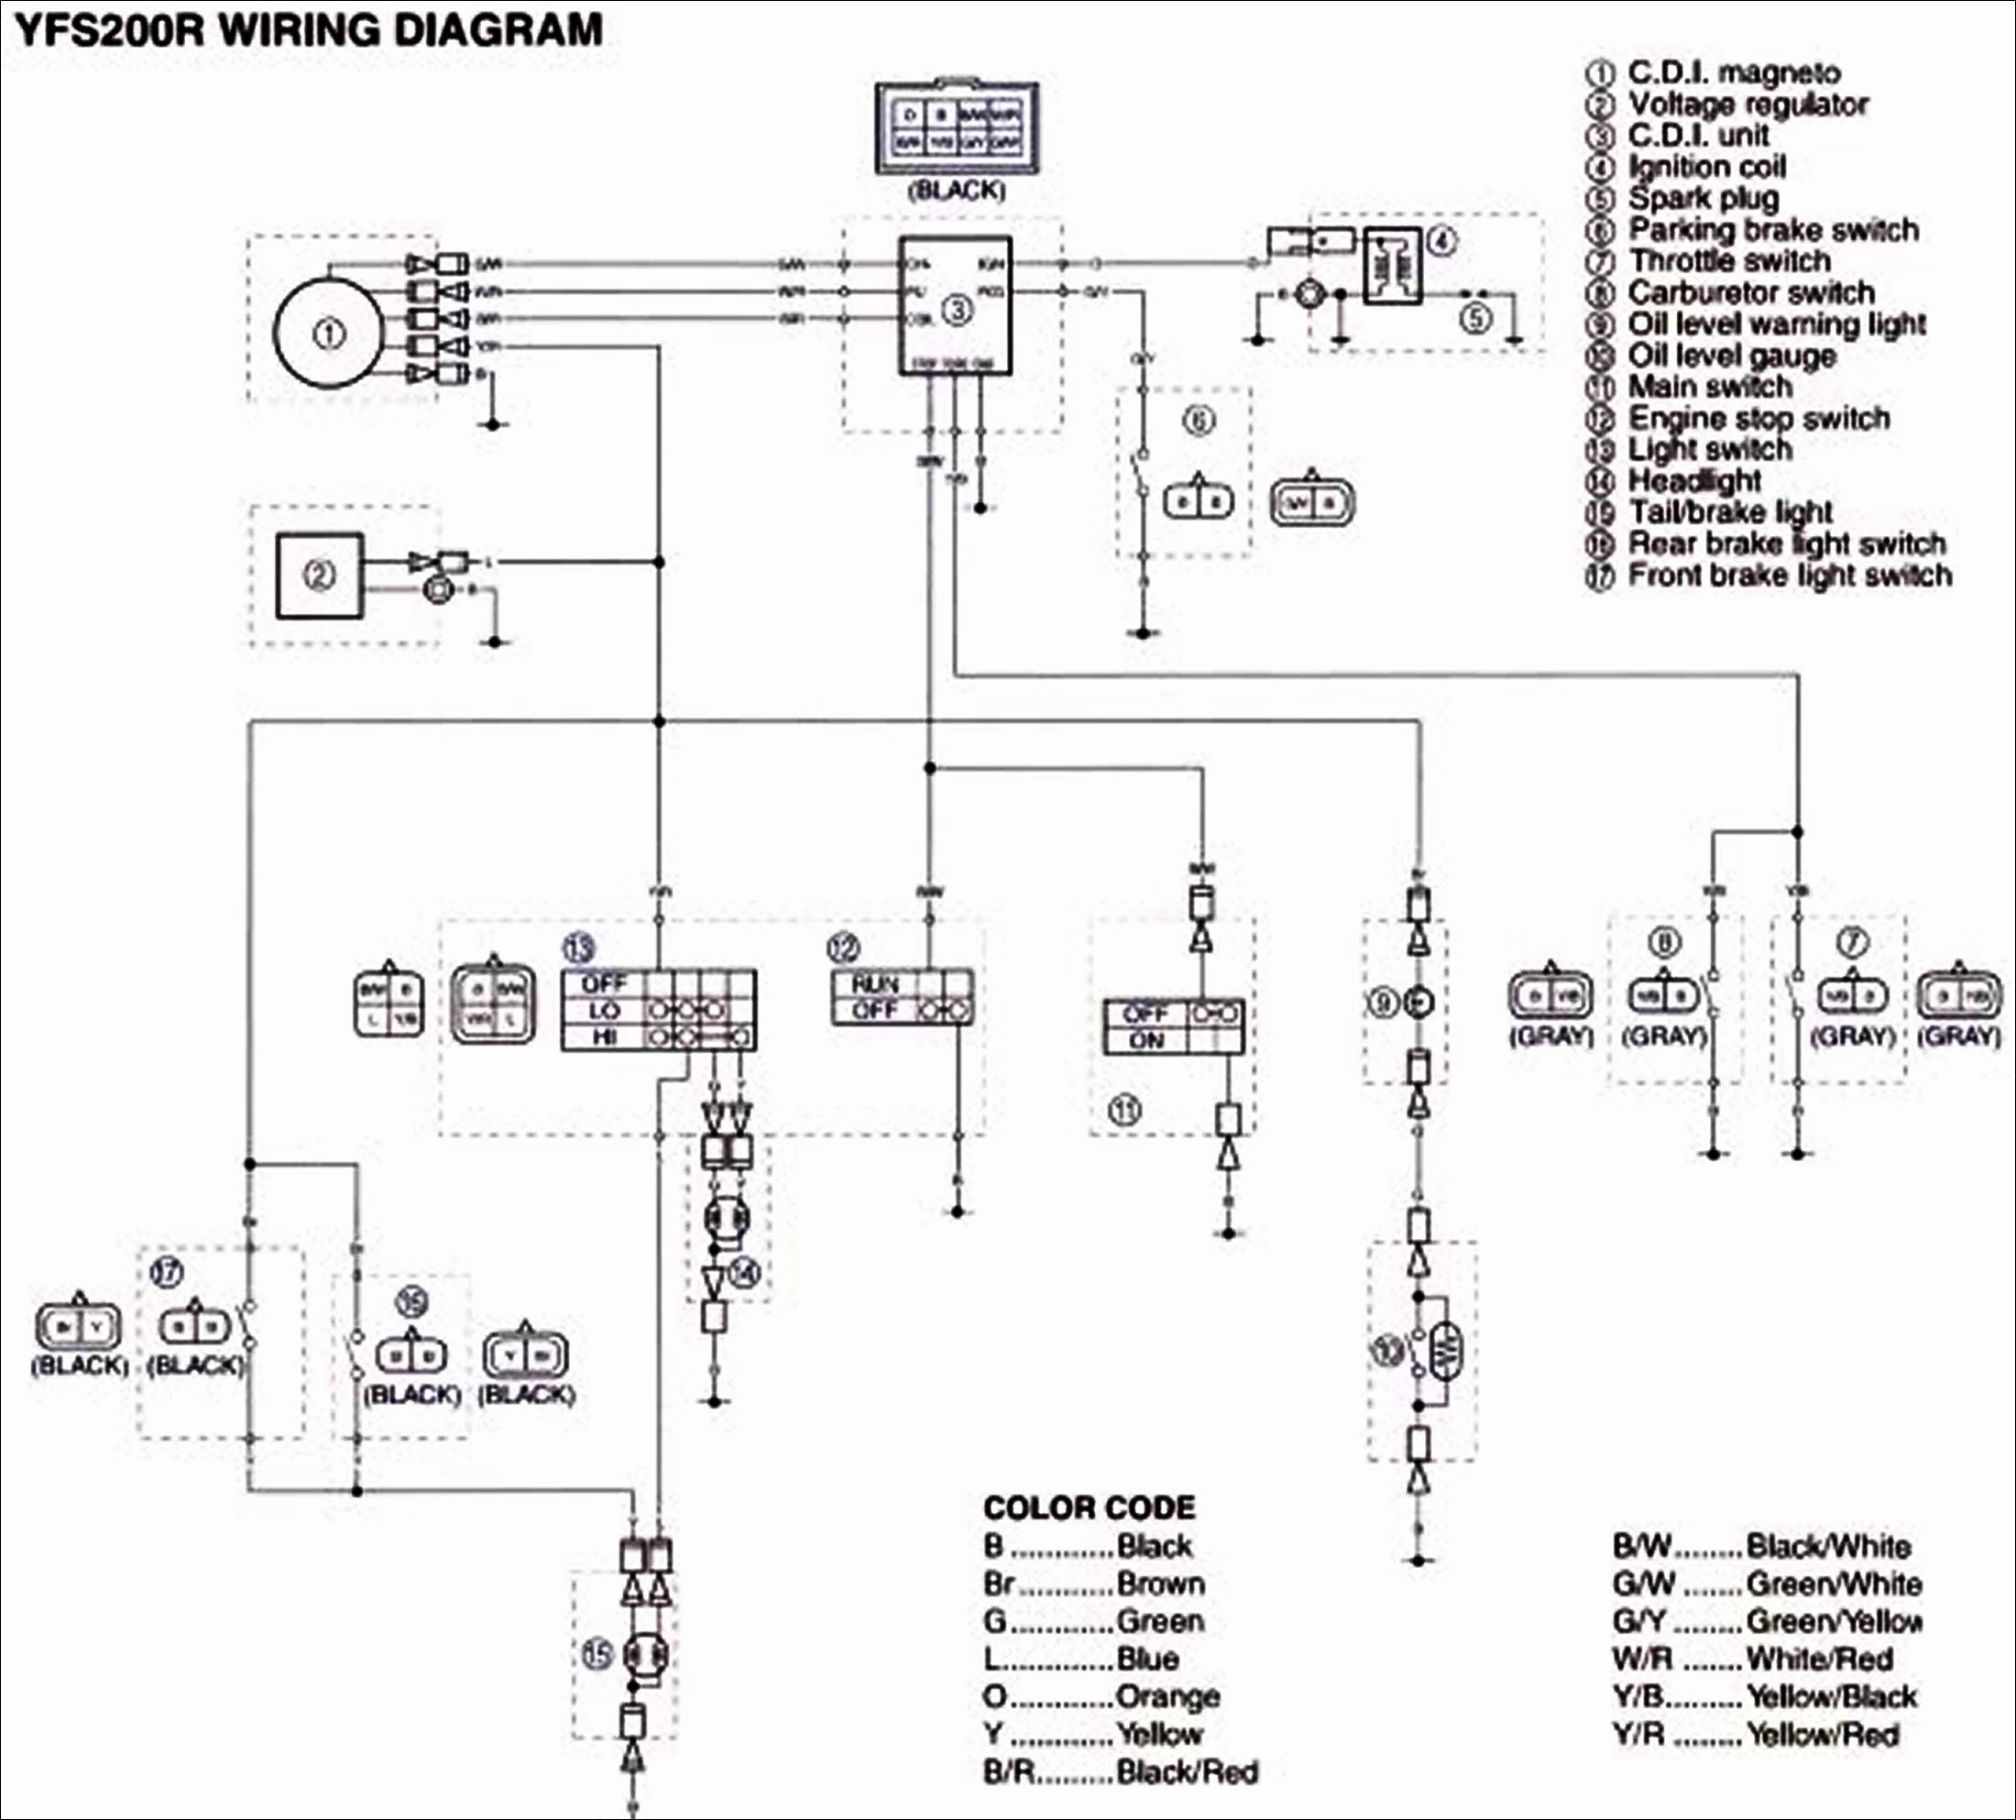 yamaha-big-bear-350-carburetor-diagram-22 Wiring Diagram Big Bear X on irs 30 zillas, irs high lifter, 6 inch lift, 4x4 pull starter, oil change,